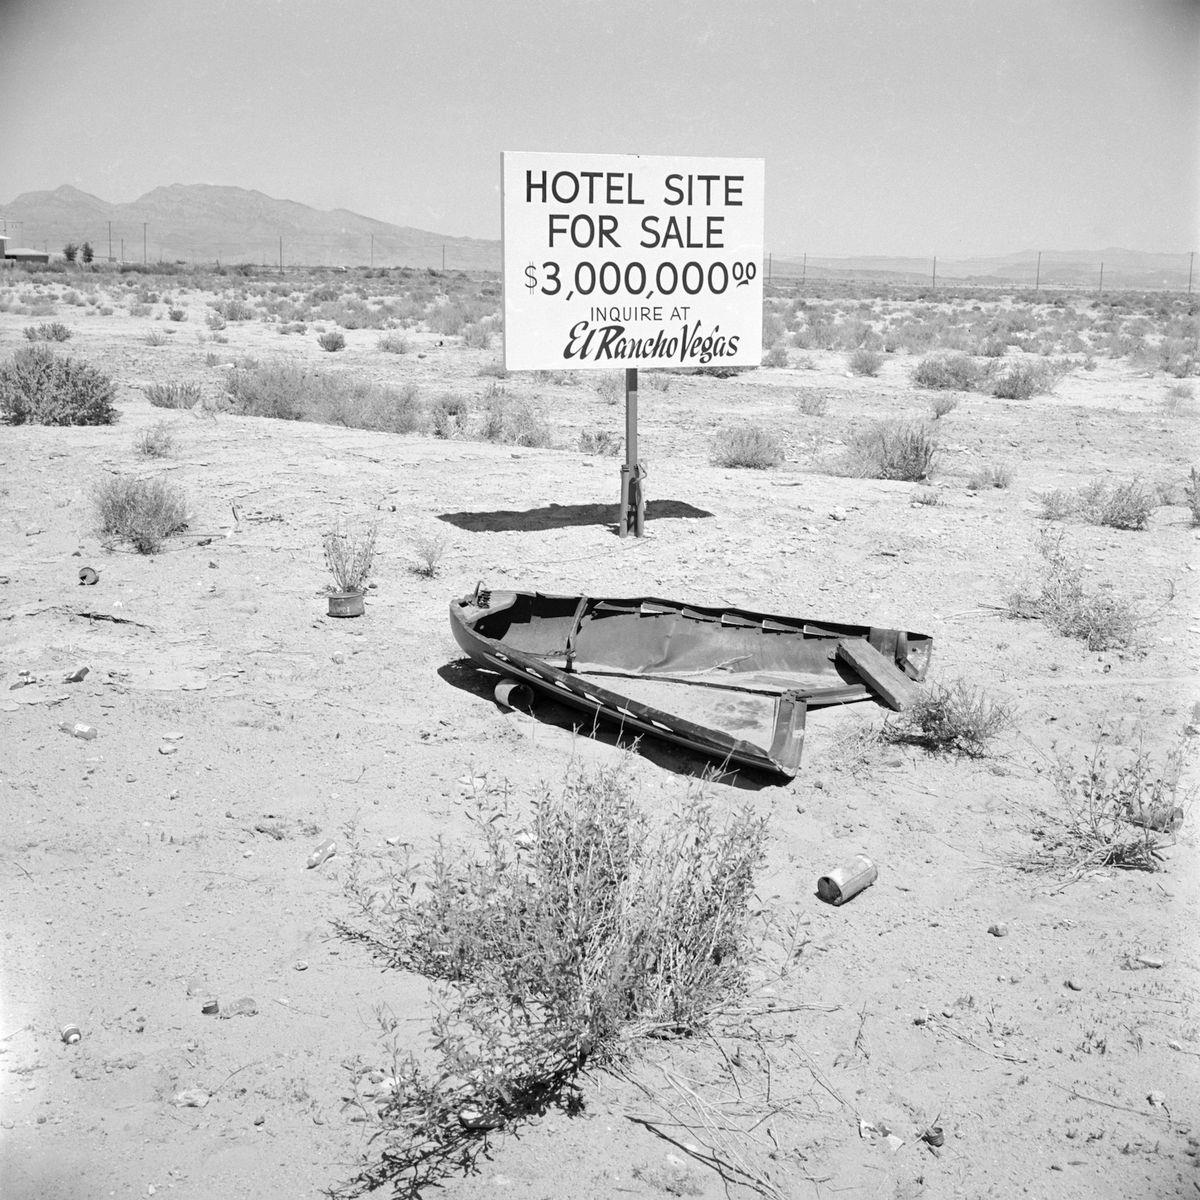 Slide 43 of 50: As Las Vegas grew in popularity throughout the '50s, available lots grew in value. Here, a hotel site plot was being sold for $3 million in 1955.